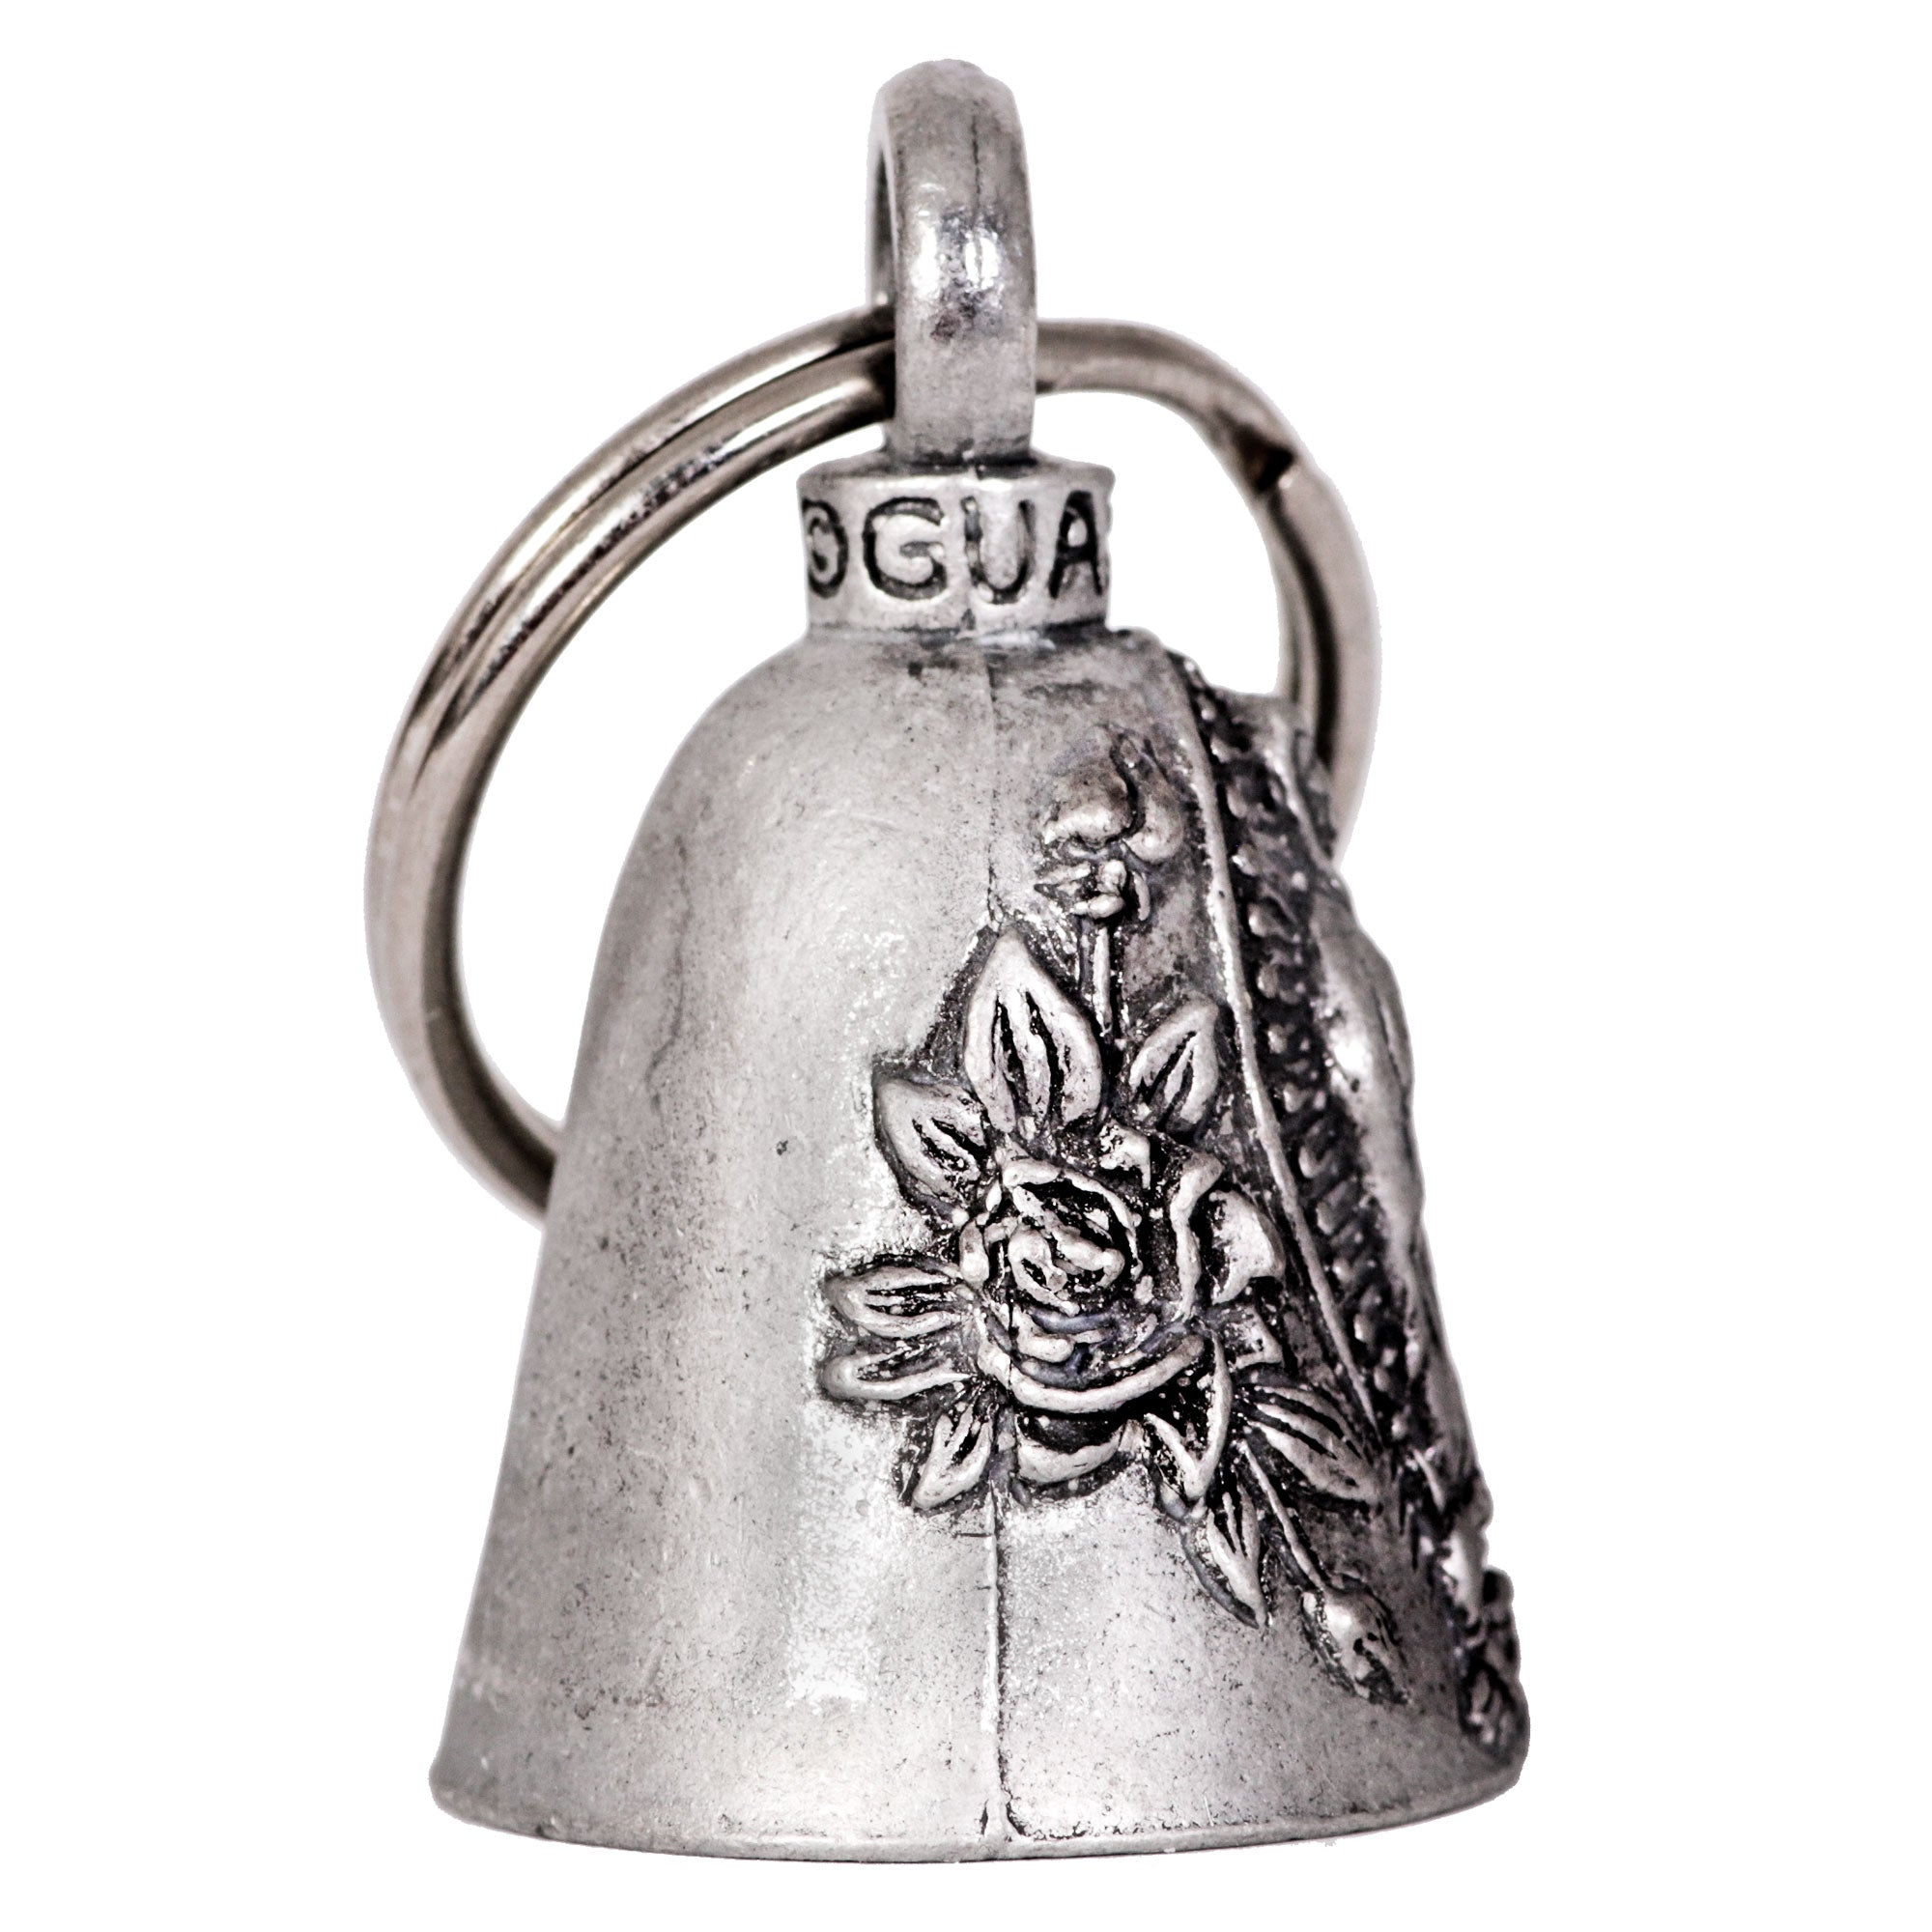 Hot Leathers Virgin Mary Guardian Bell